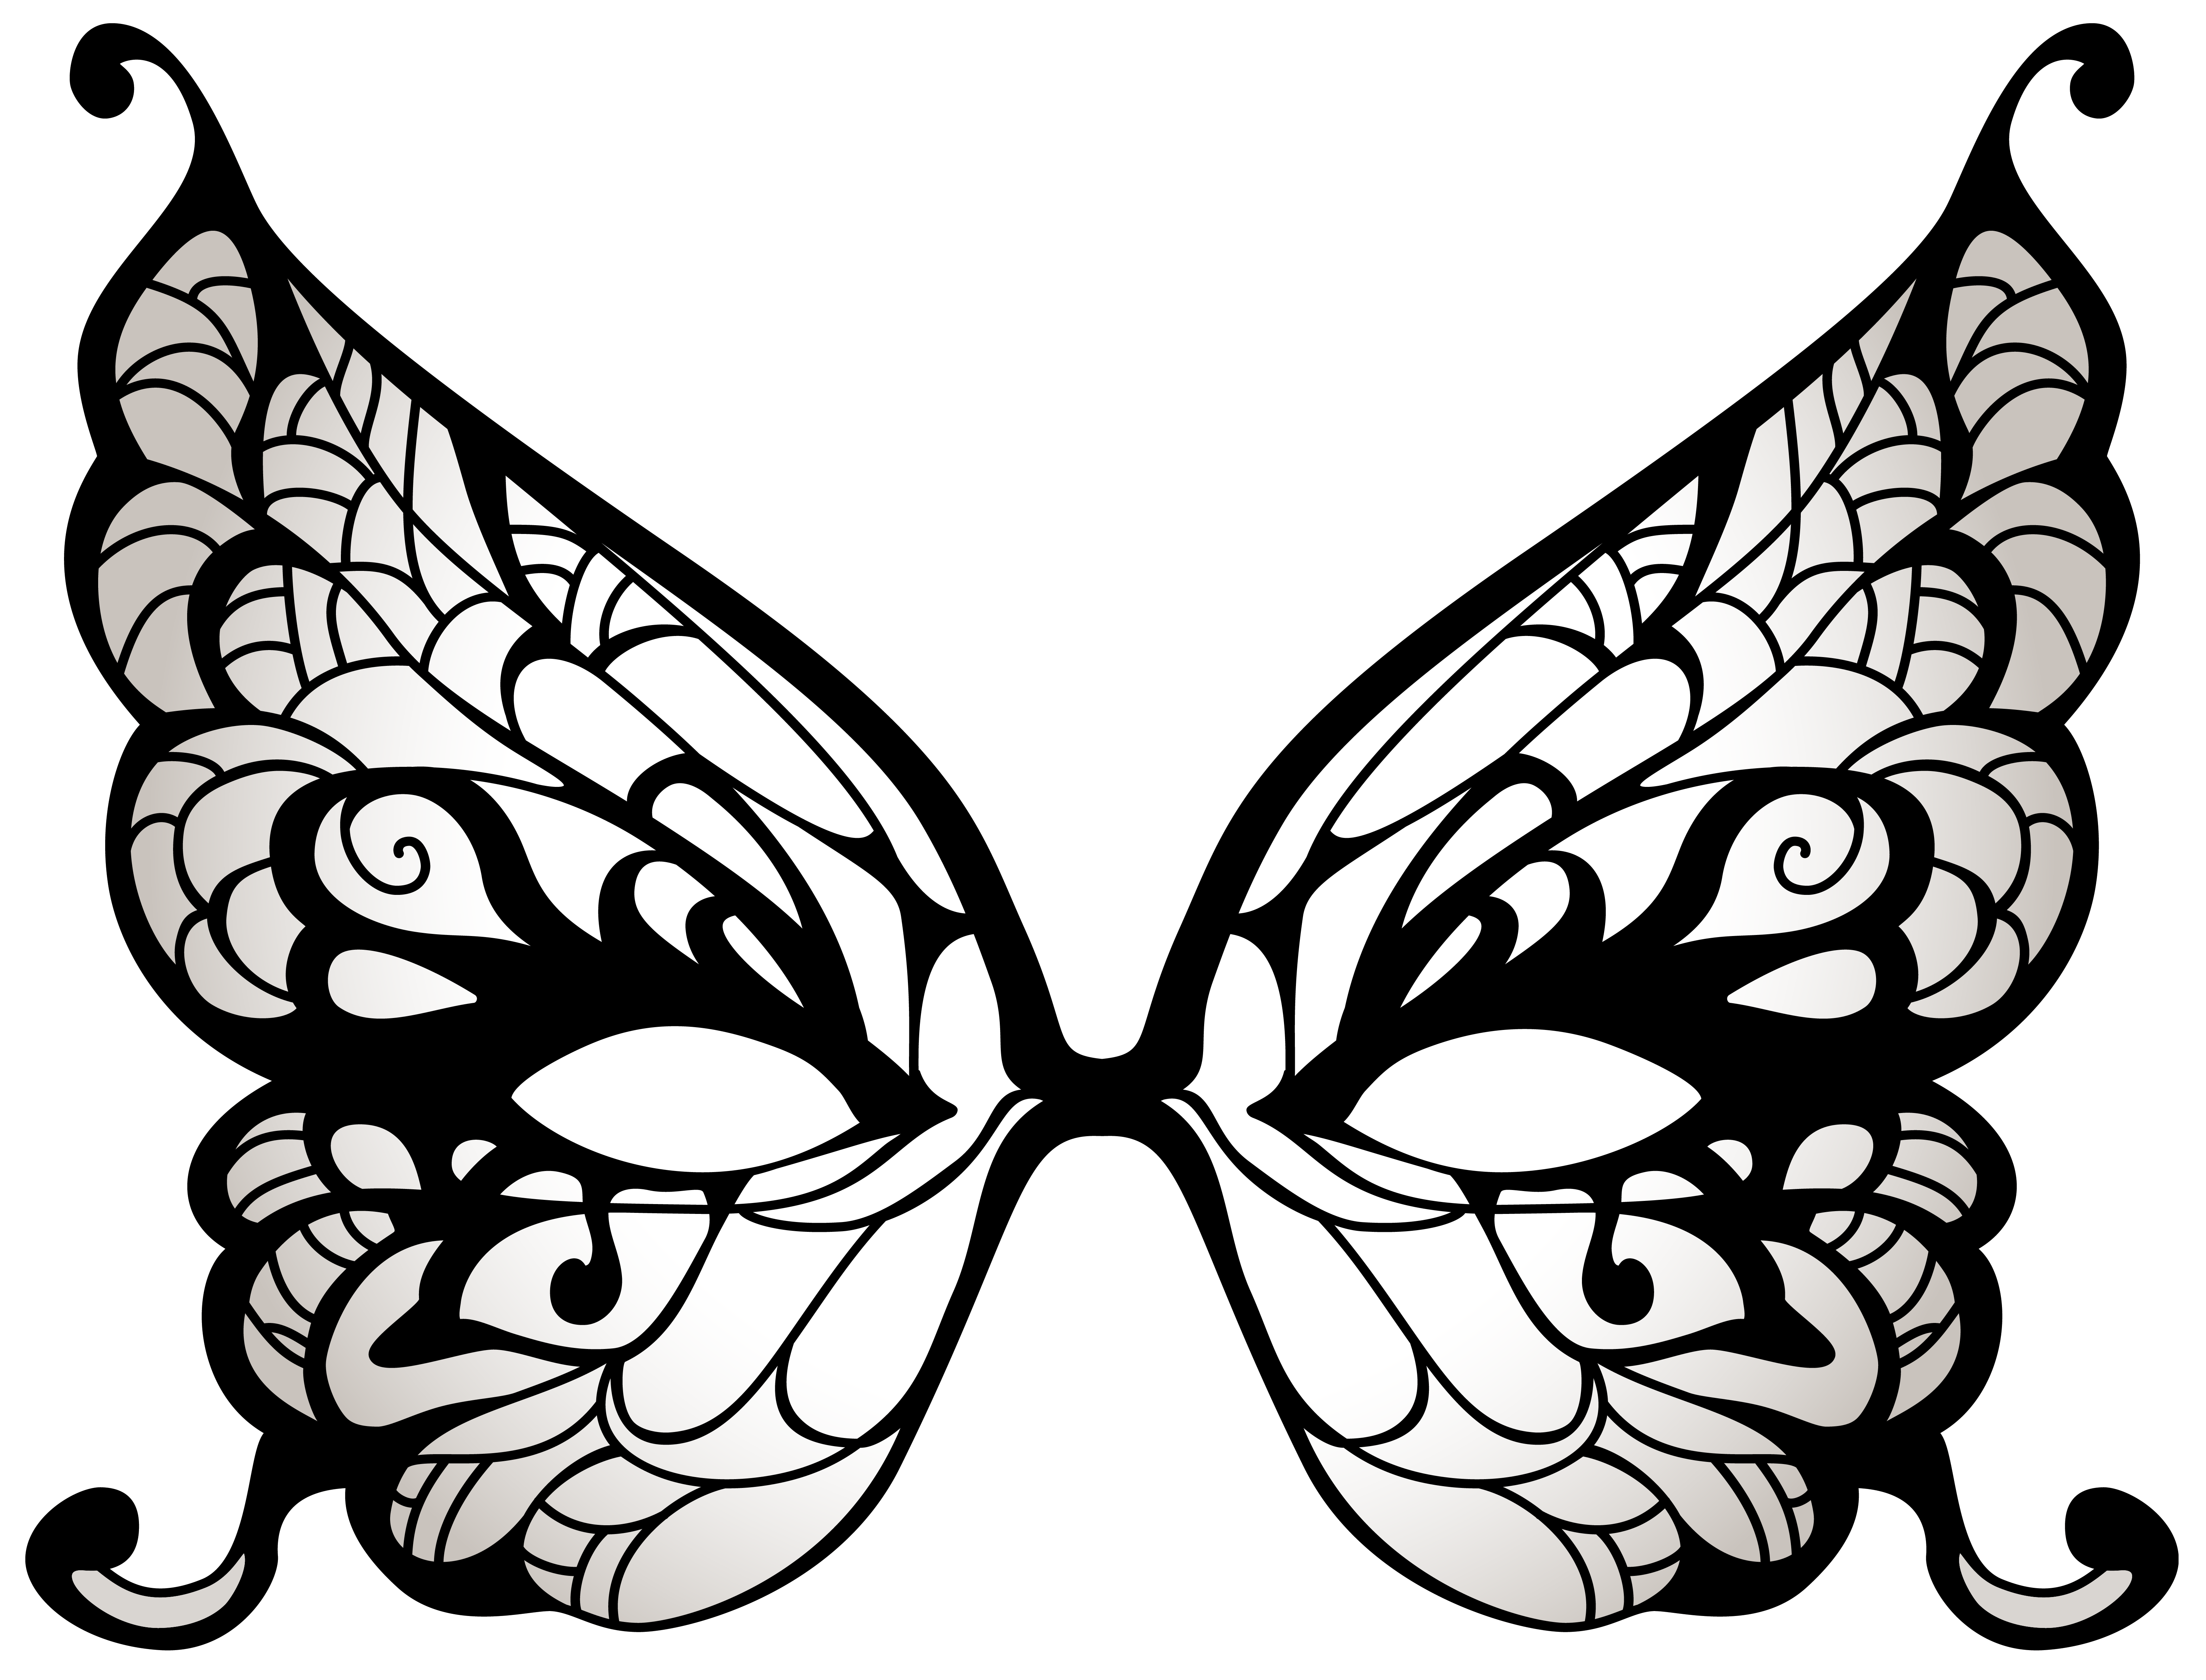 vector royalty free stock Butterfly Mask Masquerade ball Amazon